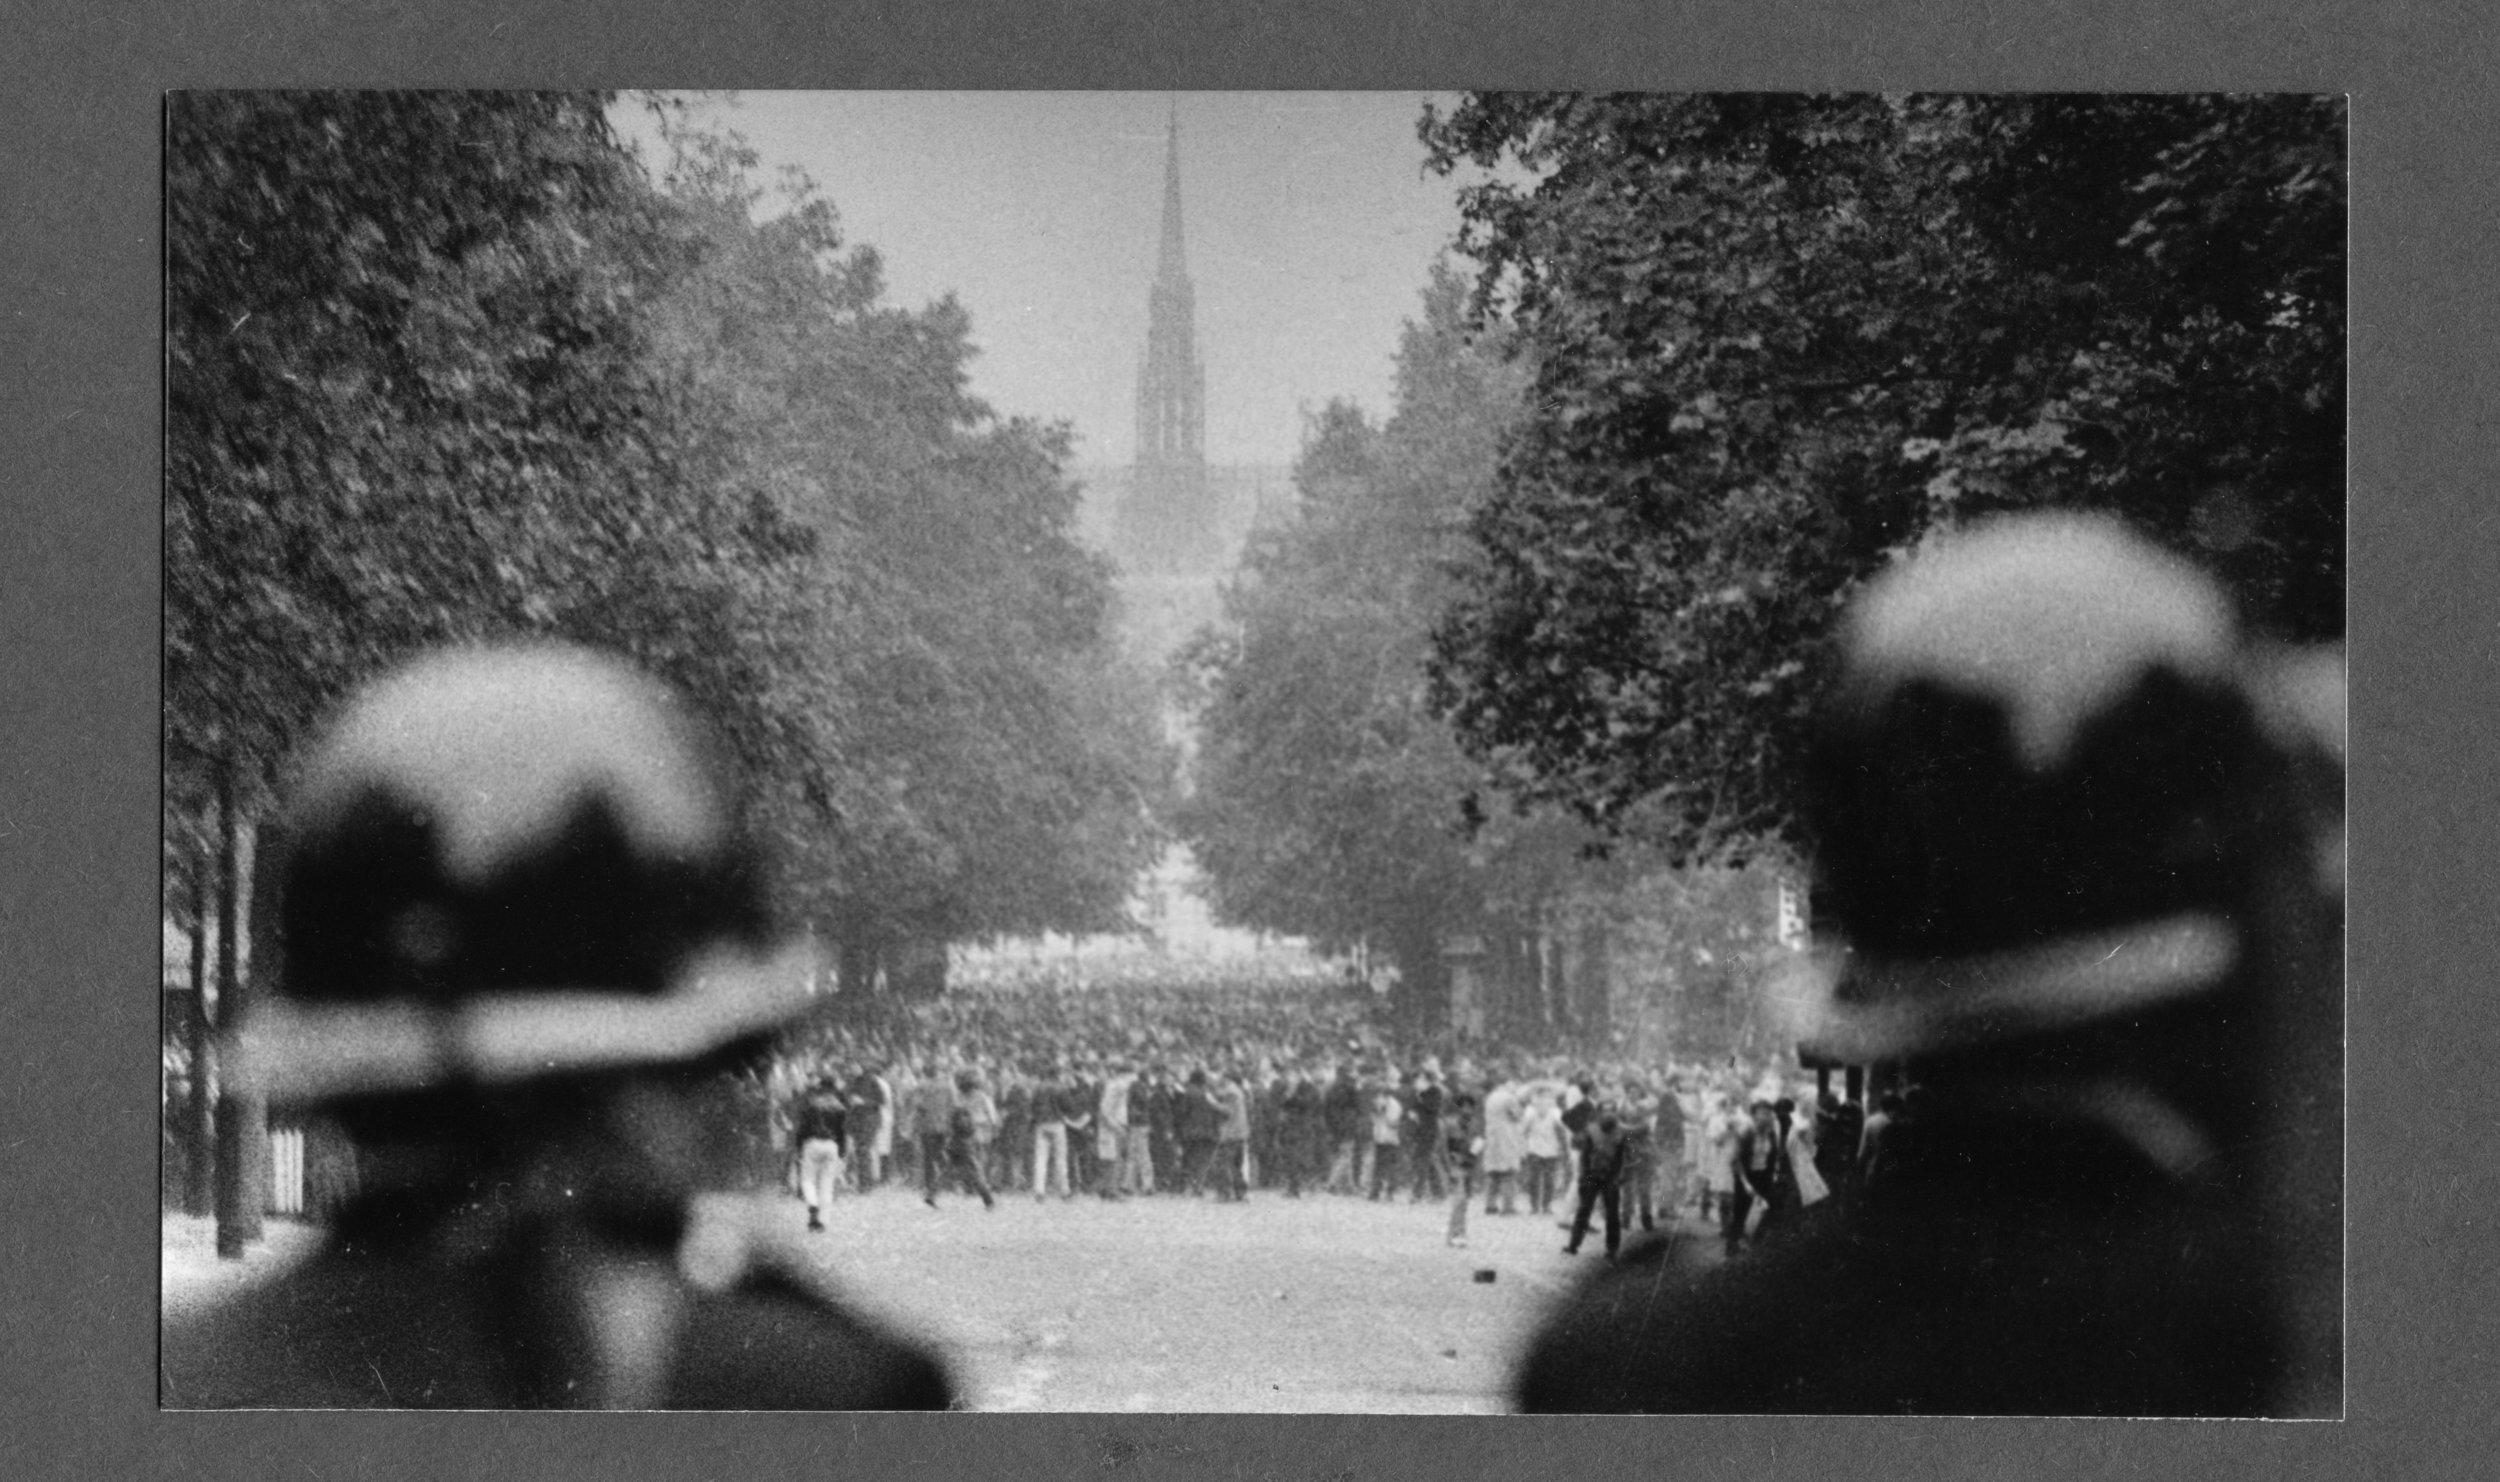 Paris, May 1968